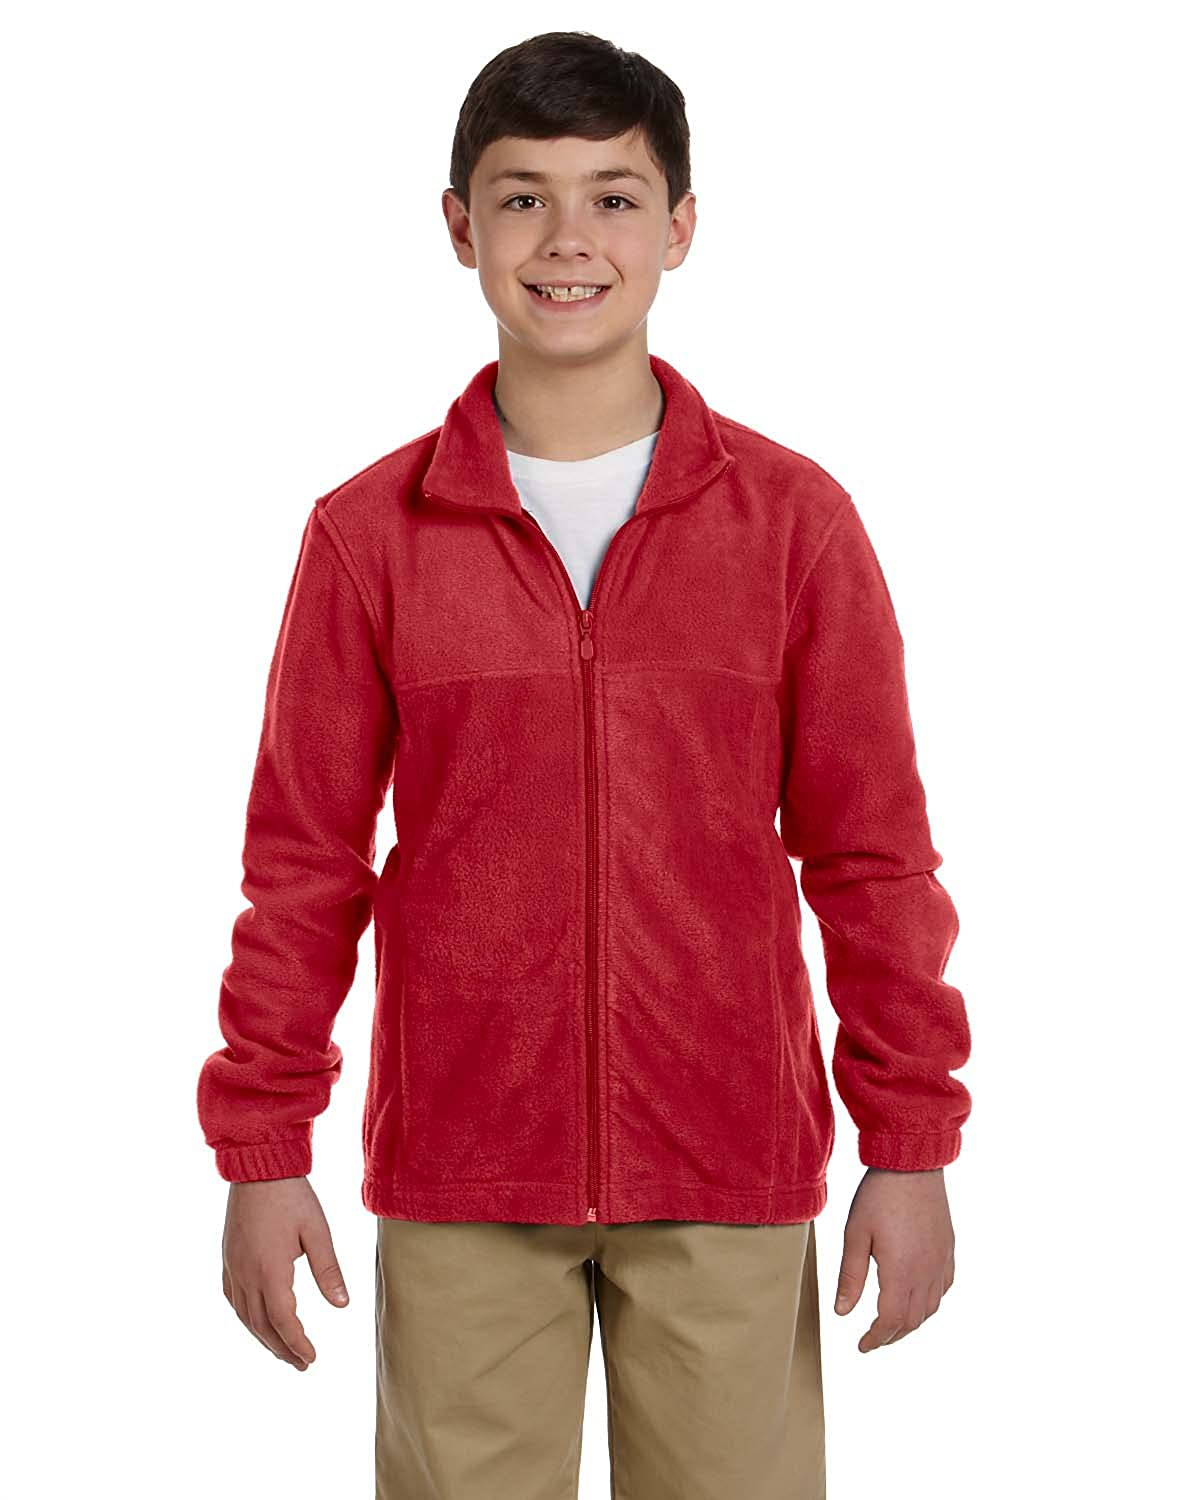 Harriton Youth 8 oz. Full-Zip Fleece M990Y